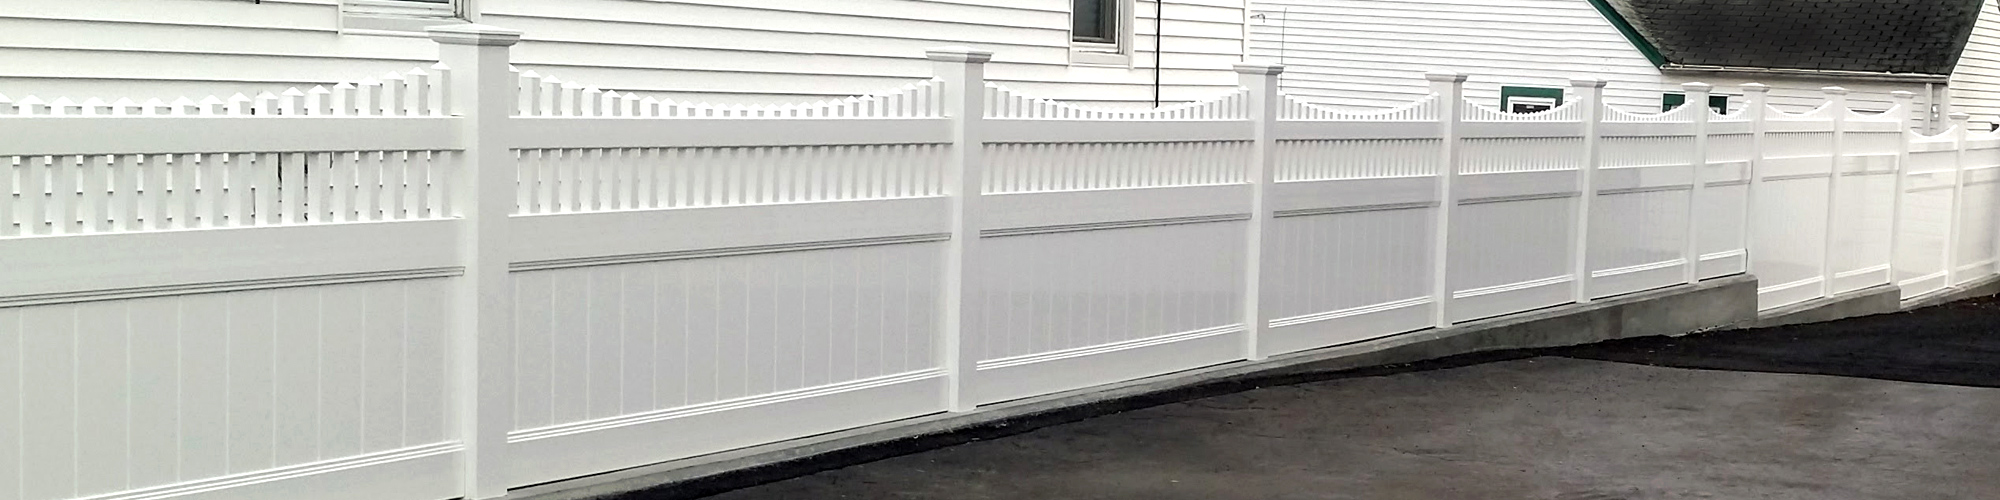 Vinyl fence with metal gate Fence Panels Aluminum Fencing Interior Railings Wrought Iron Fencing Vinyl Fencing Lowes Fences Gates Railings Ma Ri Chain Link Fencing Wrought Iron